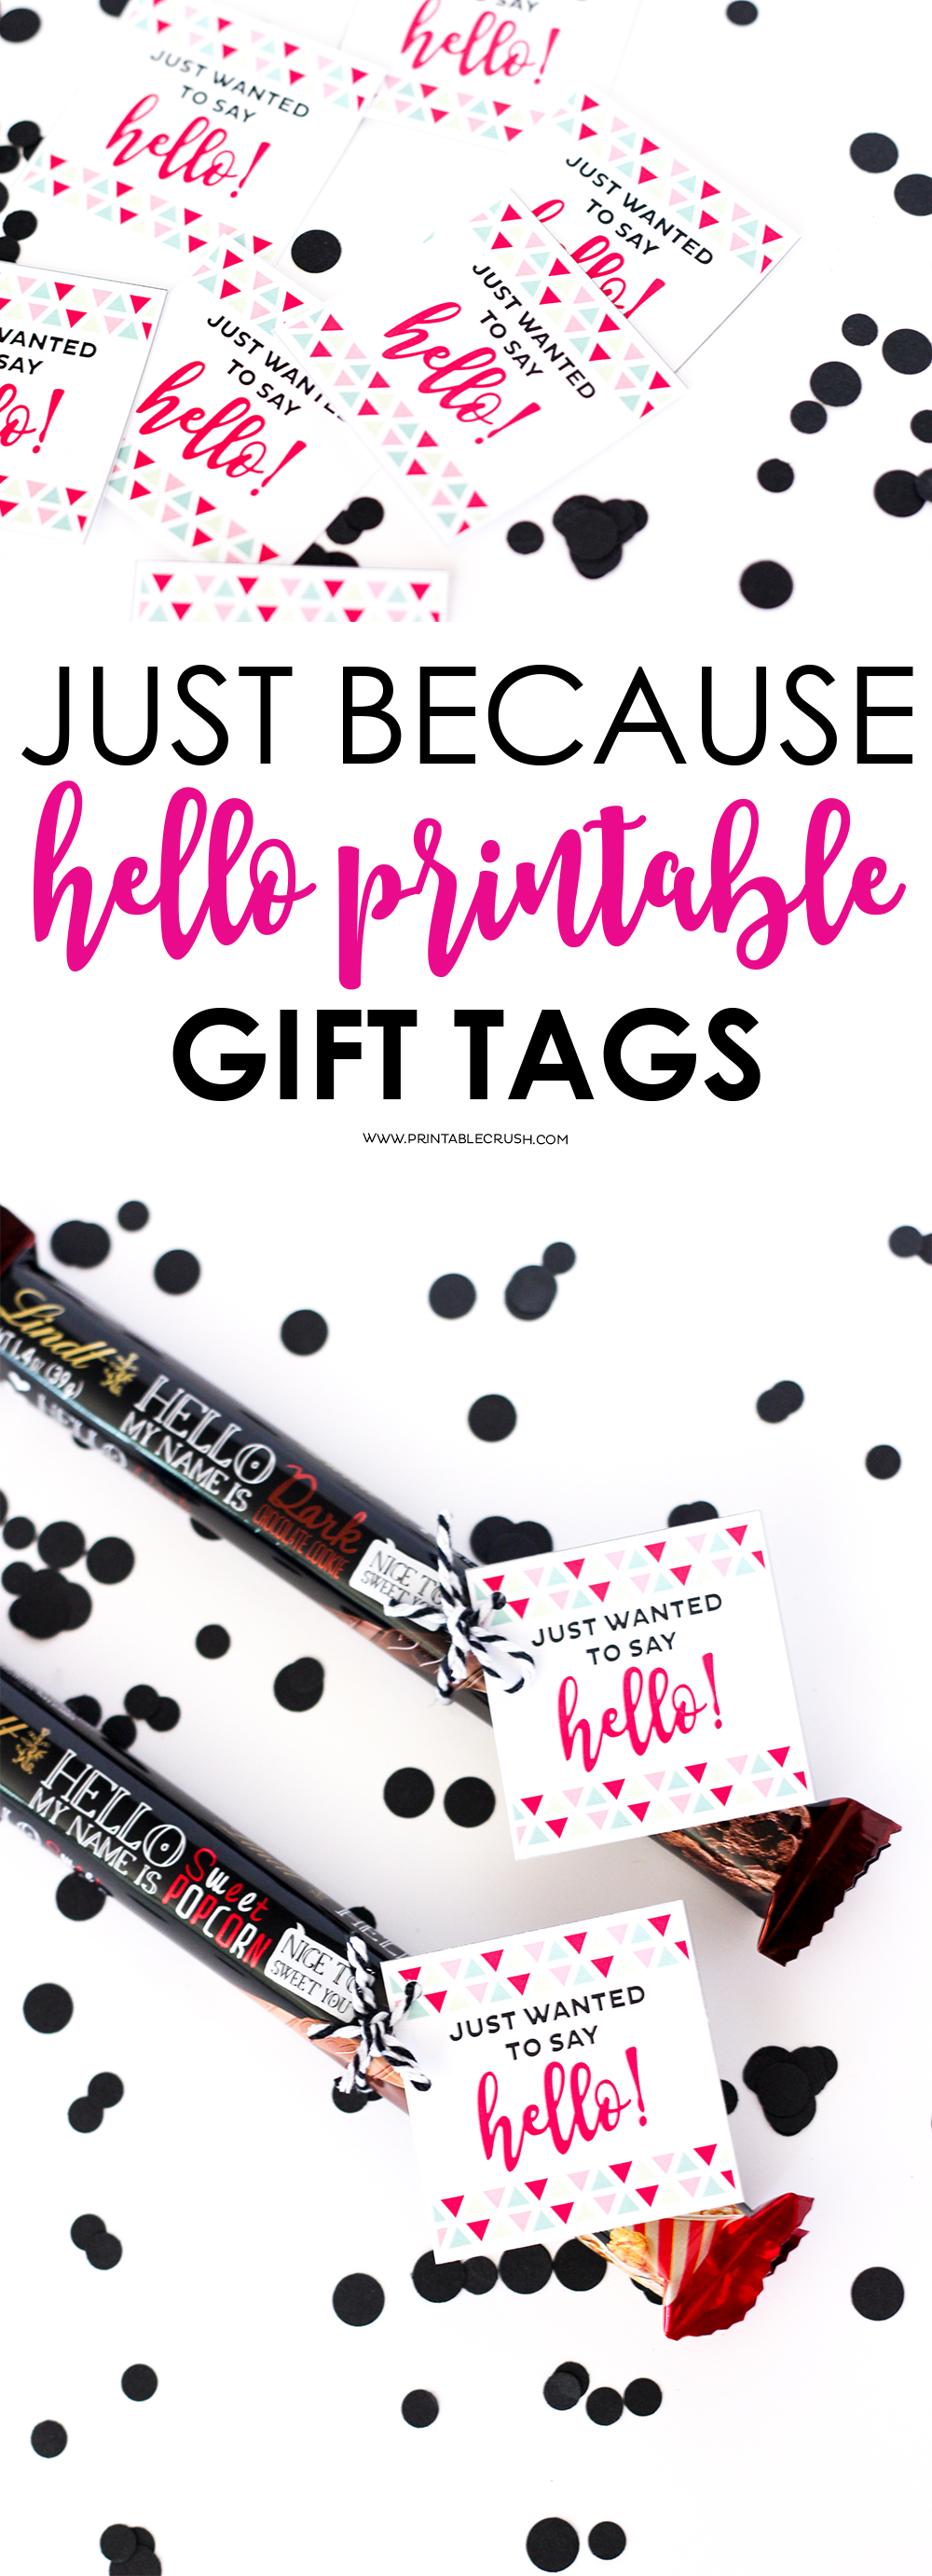 Hello printable gift tags printable crush its always a good time to make someones day with these hello printable gift tags negle Gallery